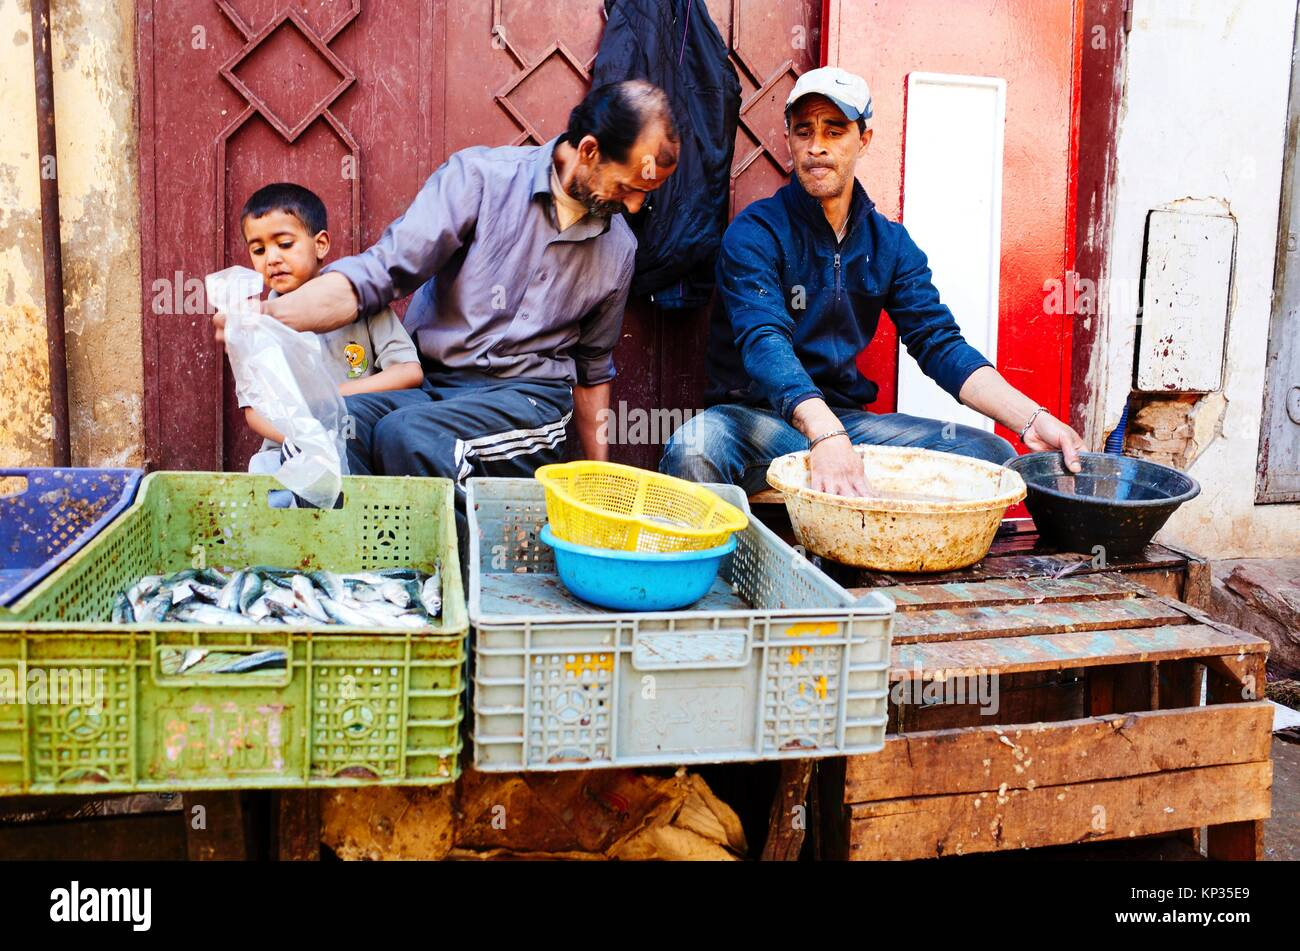 Selling fishes in the medina of Meknes, Morocco - Stock Image